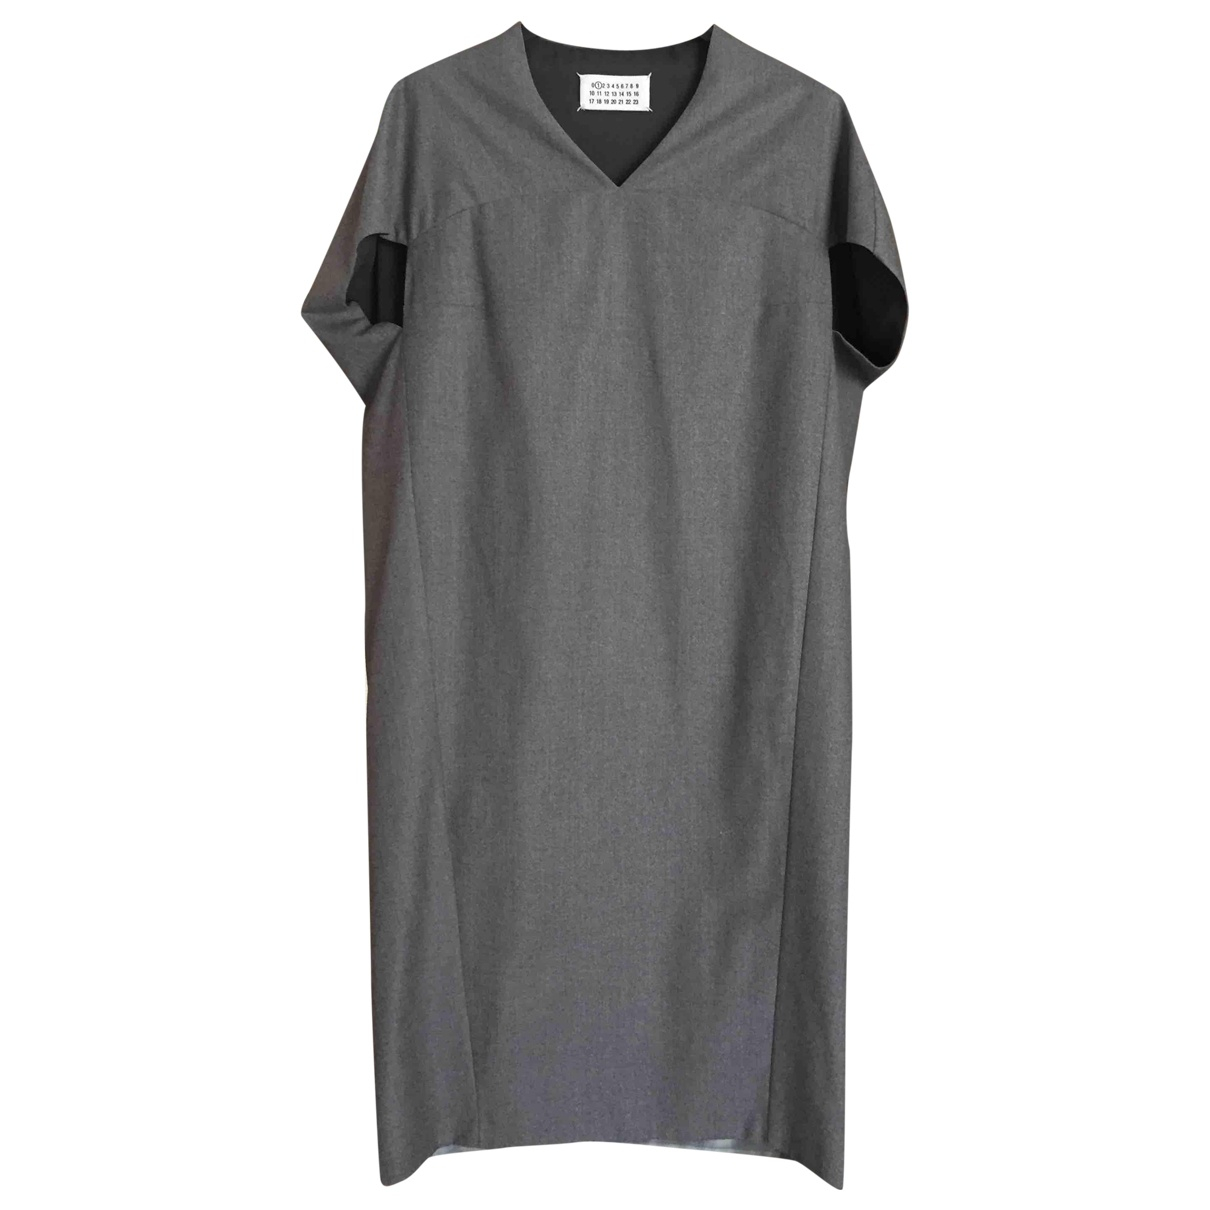 Maison Martin Margiela N Grey Wool dress for Women 40 IT